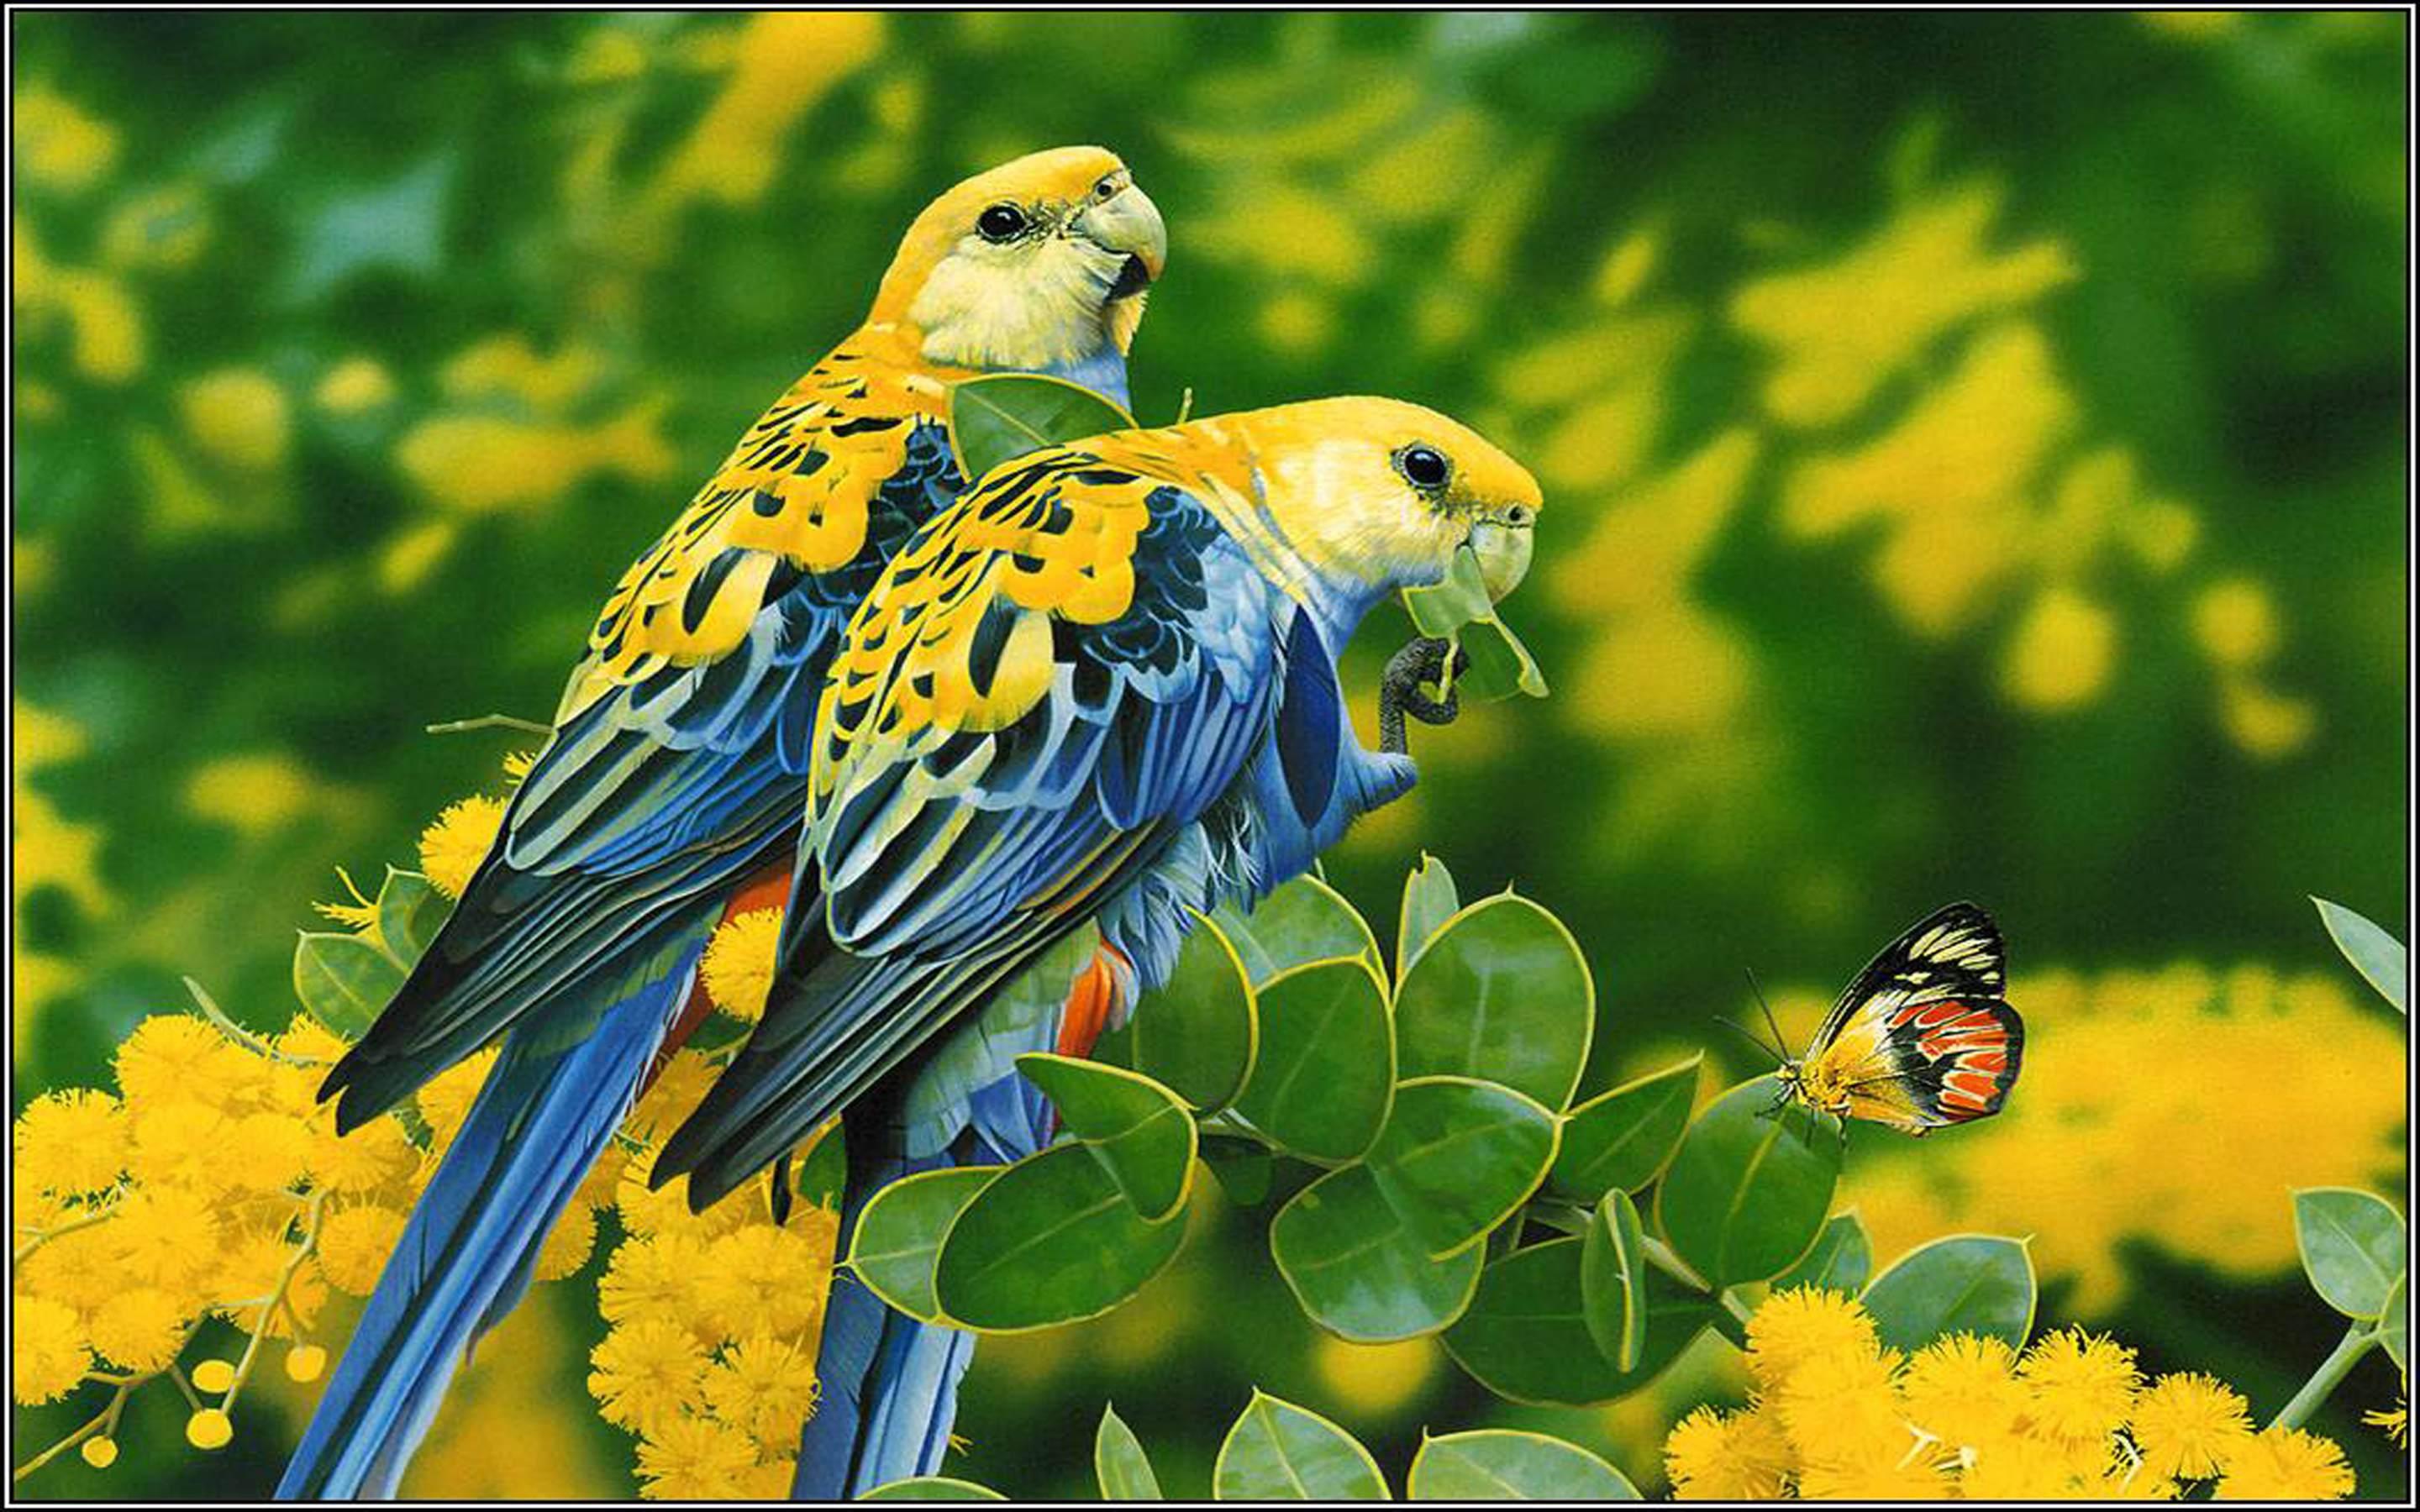 Beautiful Pictures Of Flowers And Butterflies Birds Birds Blue Yellow Parrots Butterfly Tree With Yellow